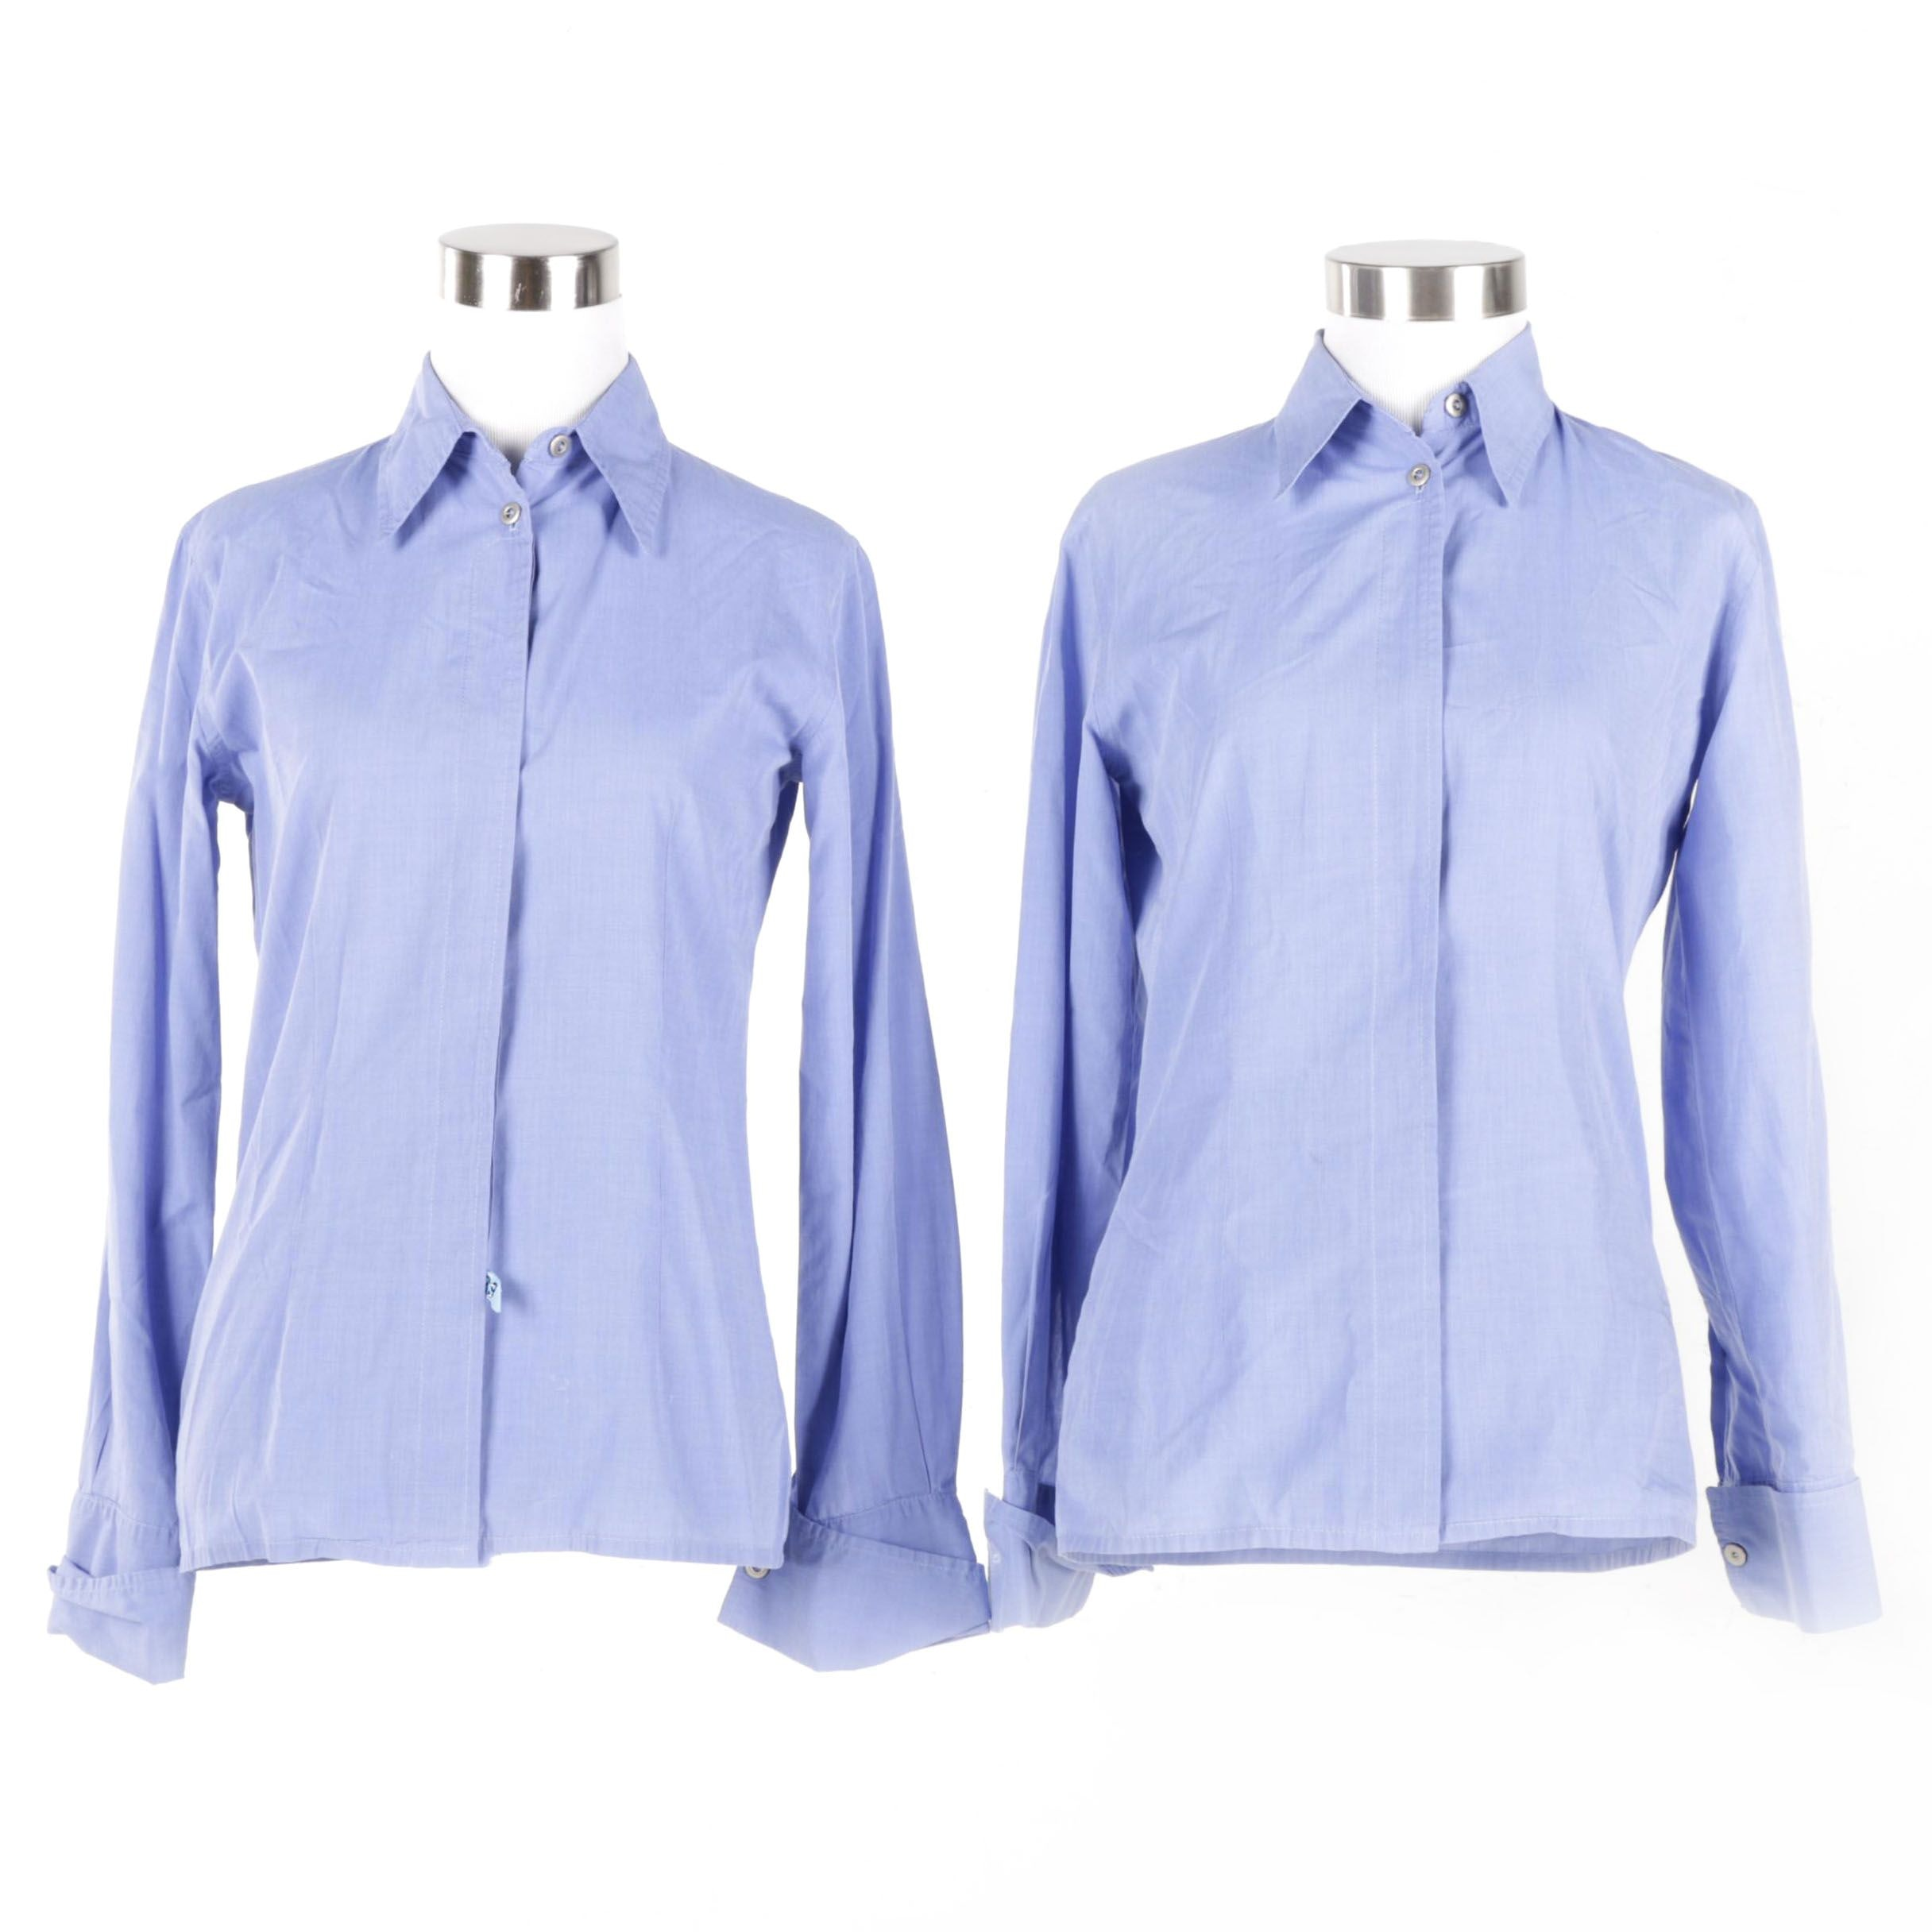 Women's Chambray Button Down Shirts by Promod